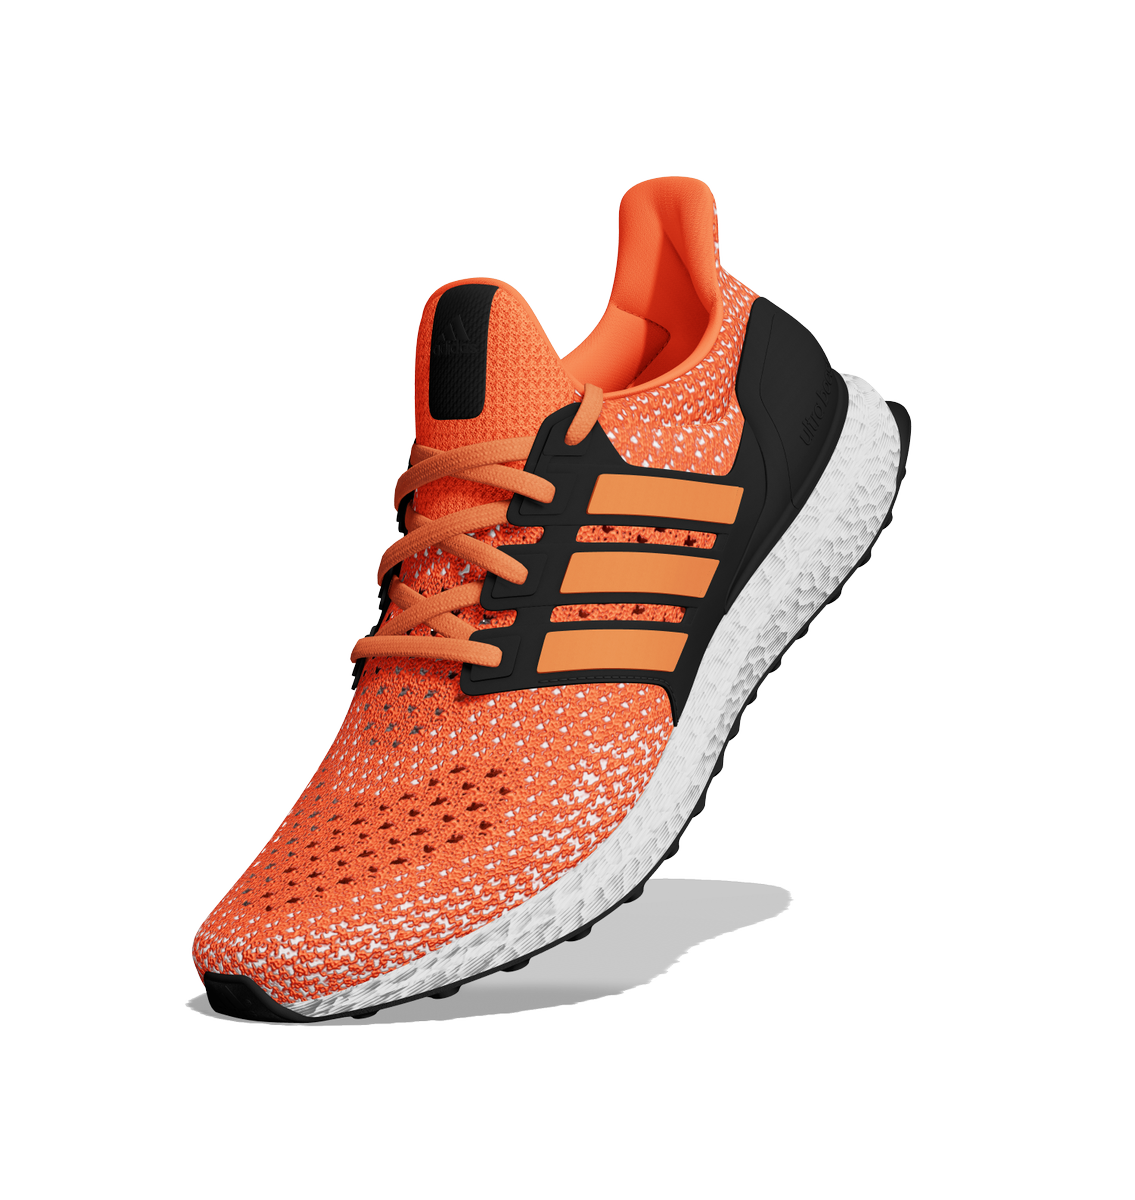 f9454e26cc240 So far here are my designs I made with the ultra boost Clima! Some pretty  dope options! http   bit.ly 2OH2fXK pic.twitter.com t3gsw074NZ